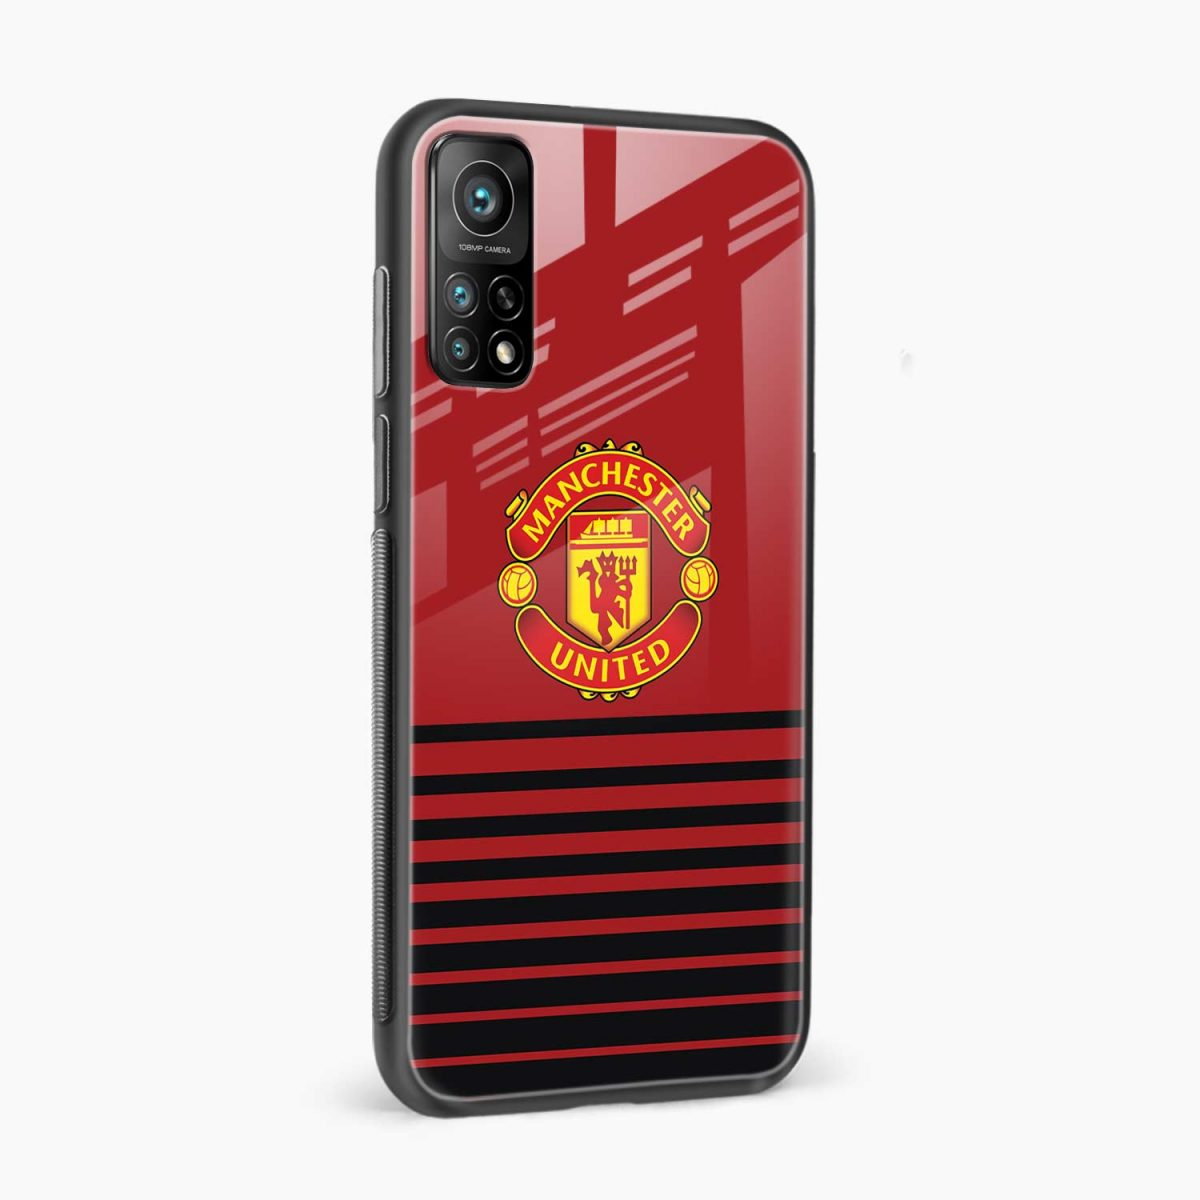 manchester united xiaomi mi 10t pro back cover side view